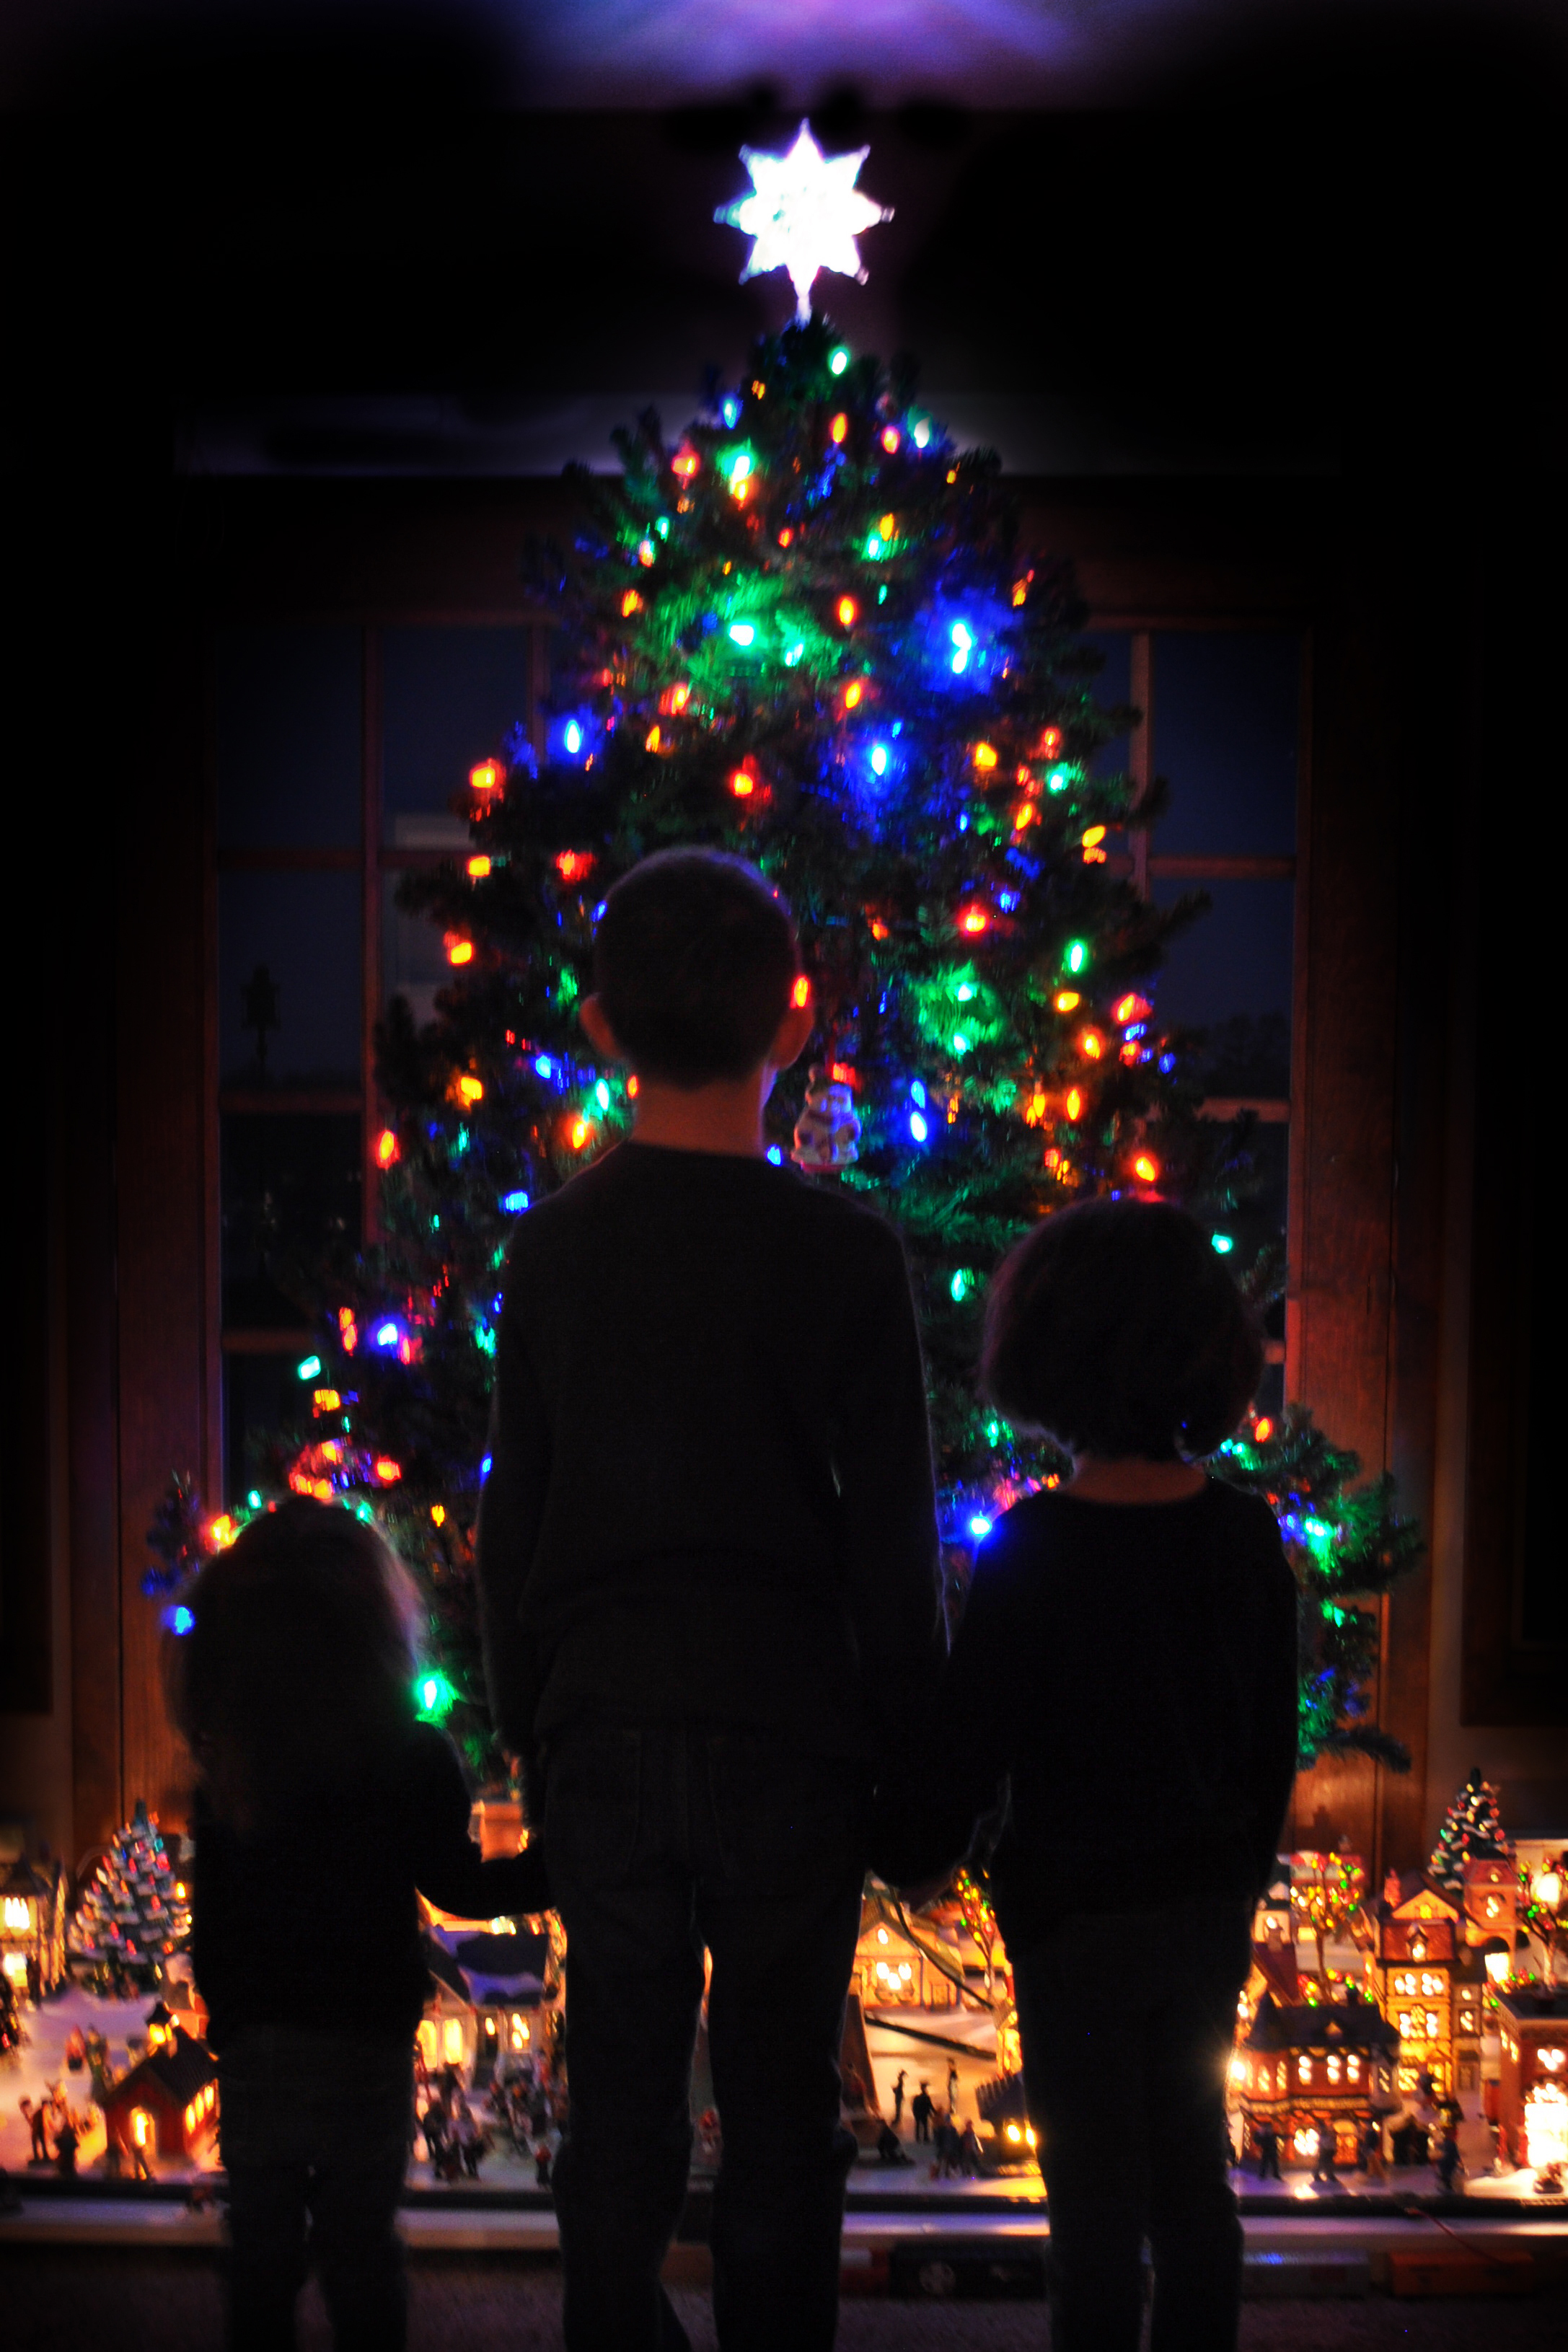 11 Traditions To Start With Your Family This Christmas! - Her View ...